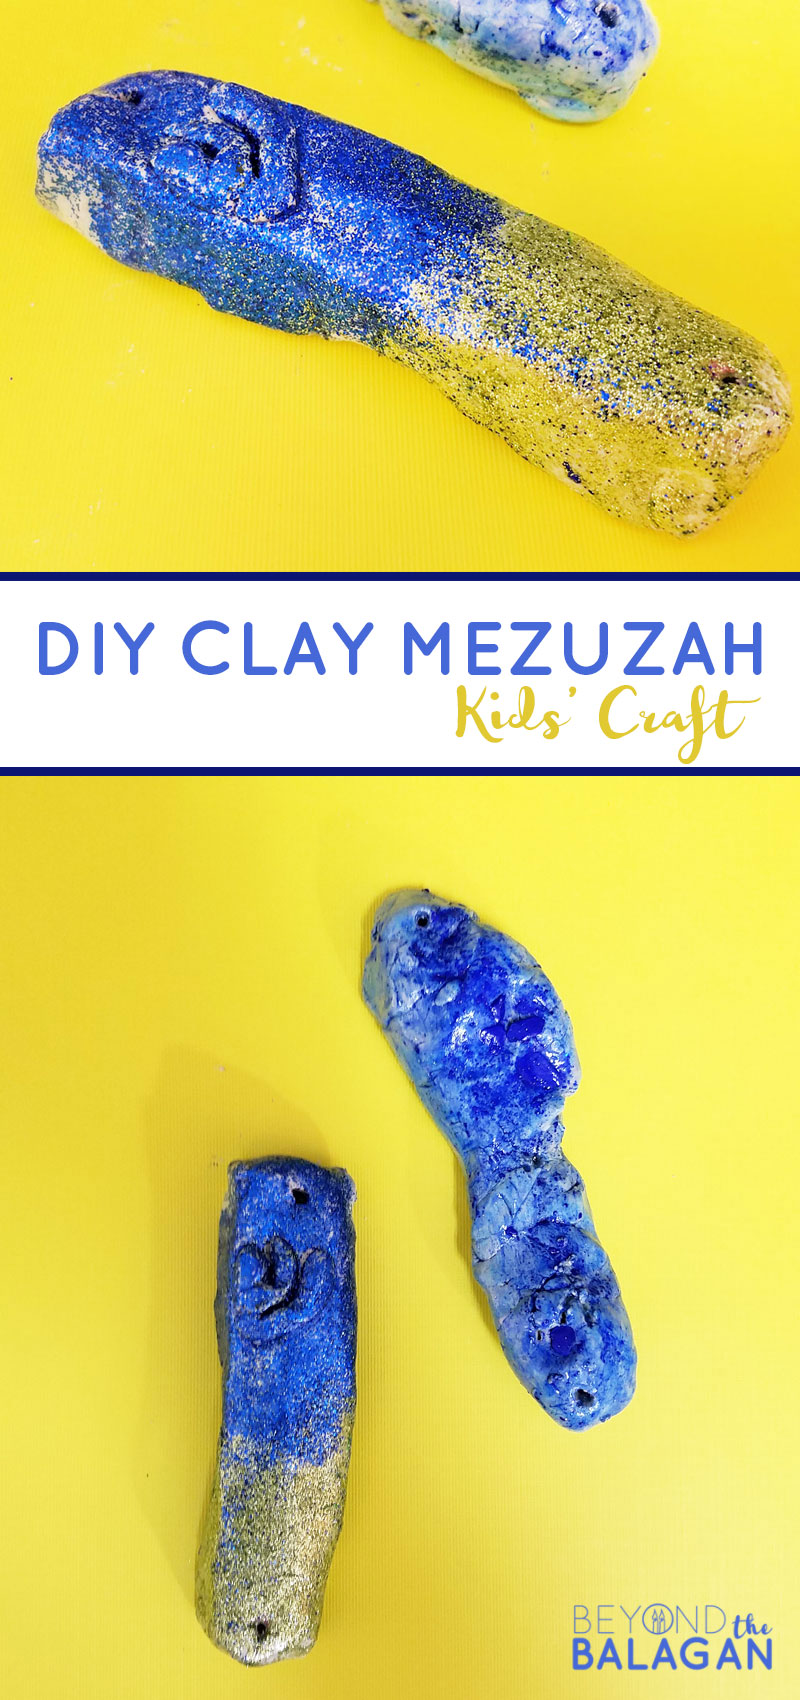 This adorable DIY clay mezuzah craft for kids is a cool Jewish craft for kids to make - it's super easy too!